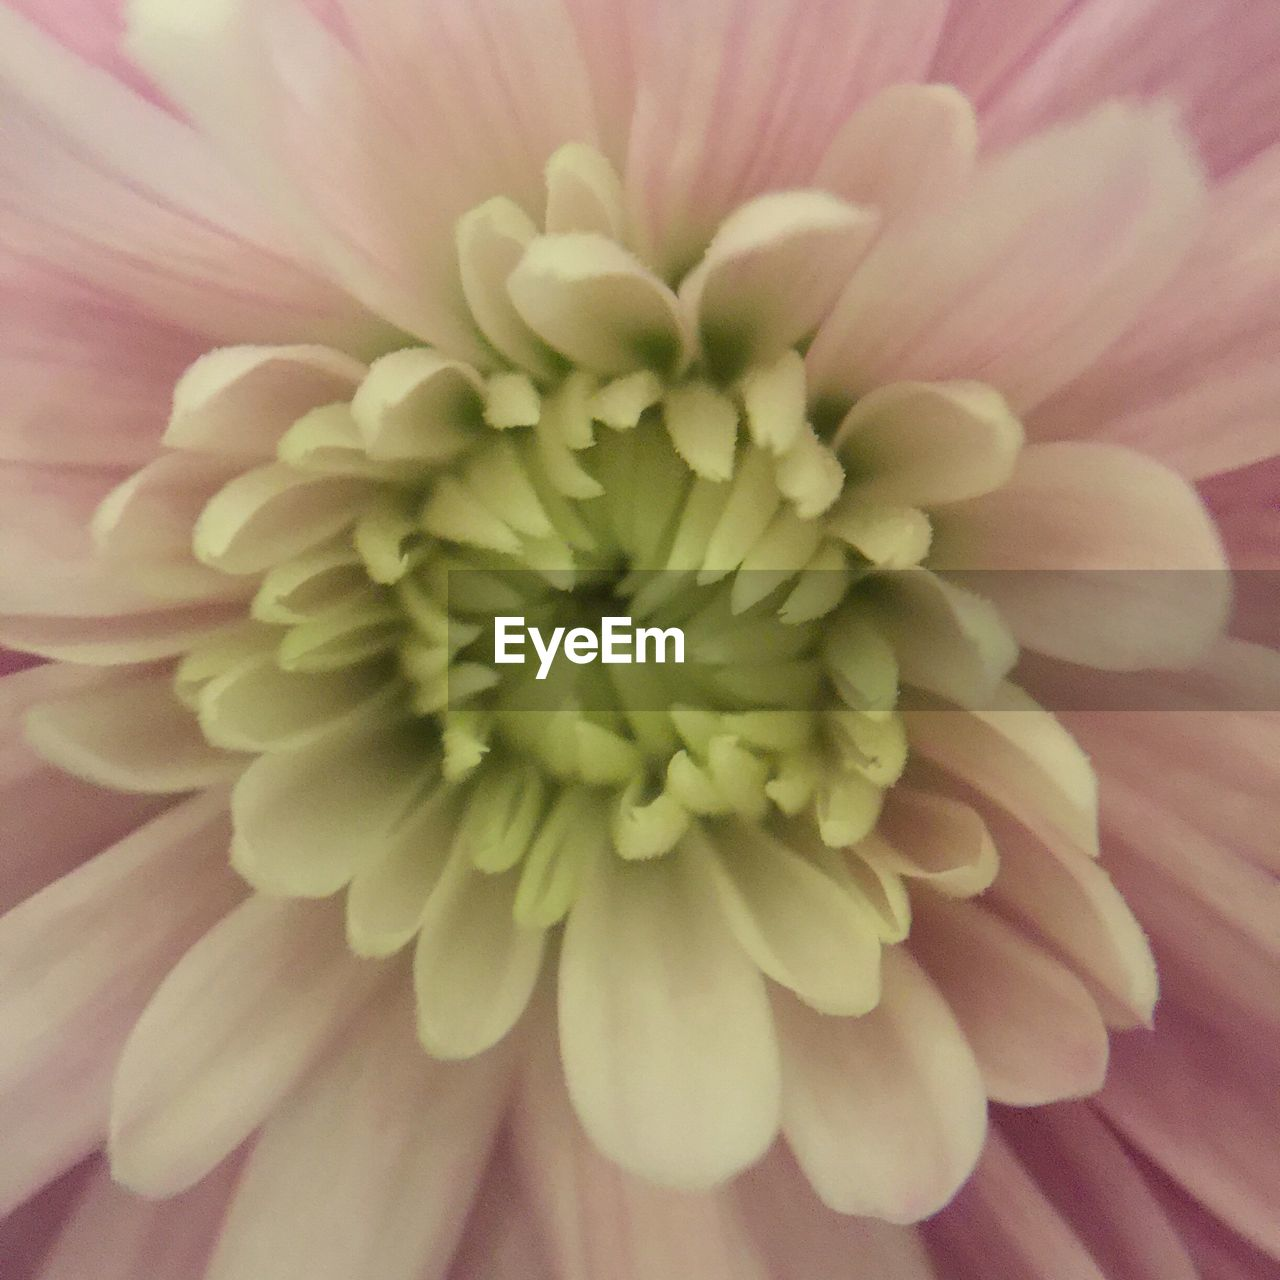 flower, petal, beauty in nature, fragility, flower head, freshness, nature, growth, close-up, pollen, plant, no people, backgrounds, selective focus, full frame, blooming, day, dahlia, springtime, outdoors